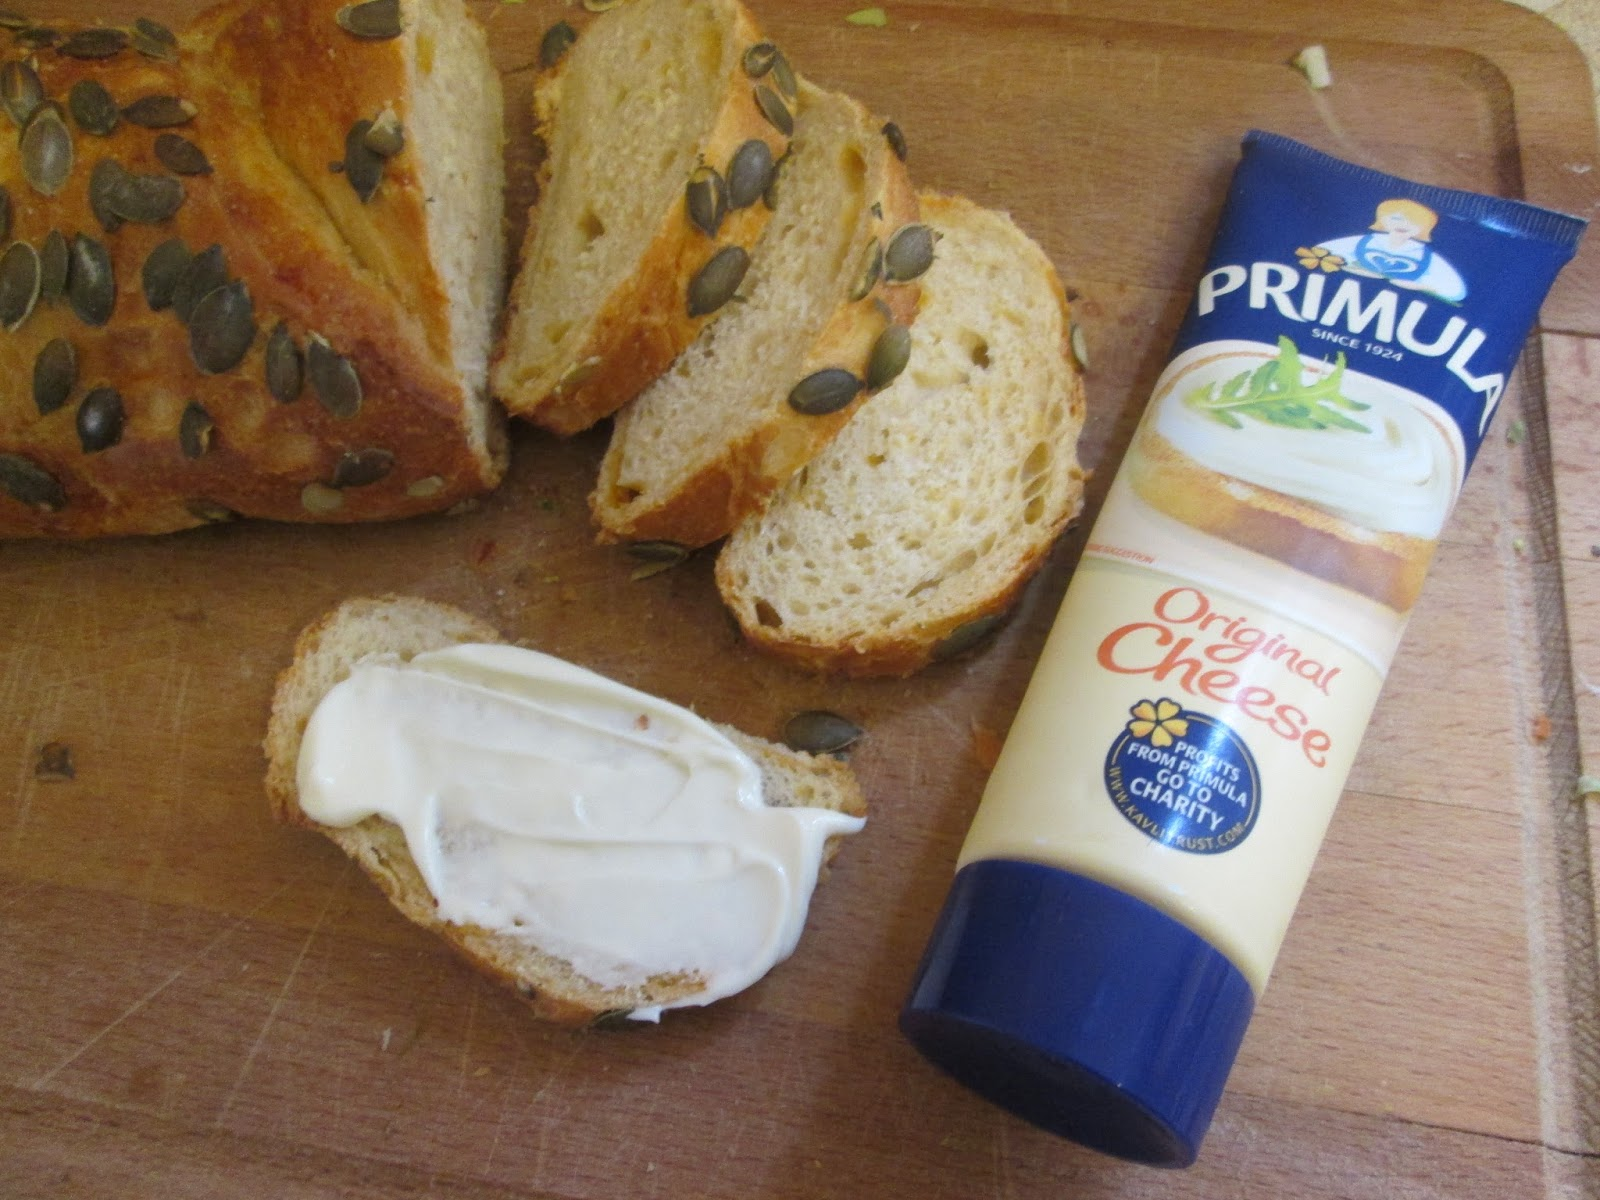 Primula original cheese spread with red Leicester and pumpkin seed bread